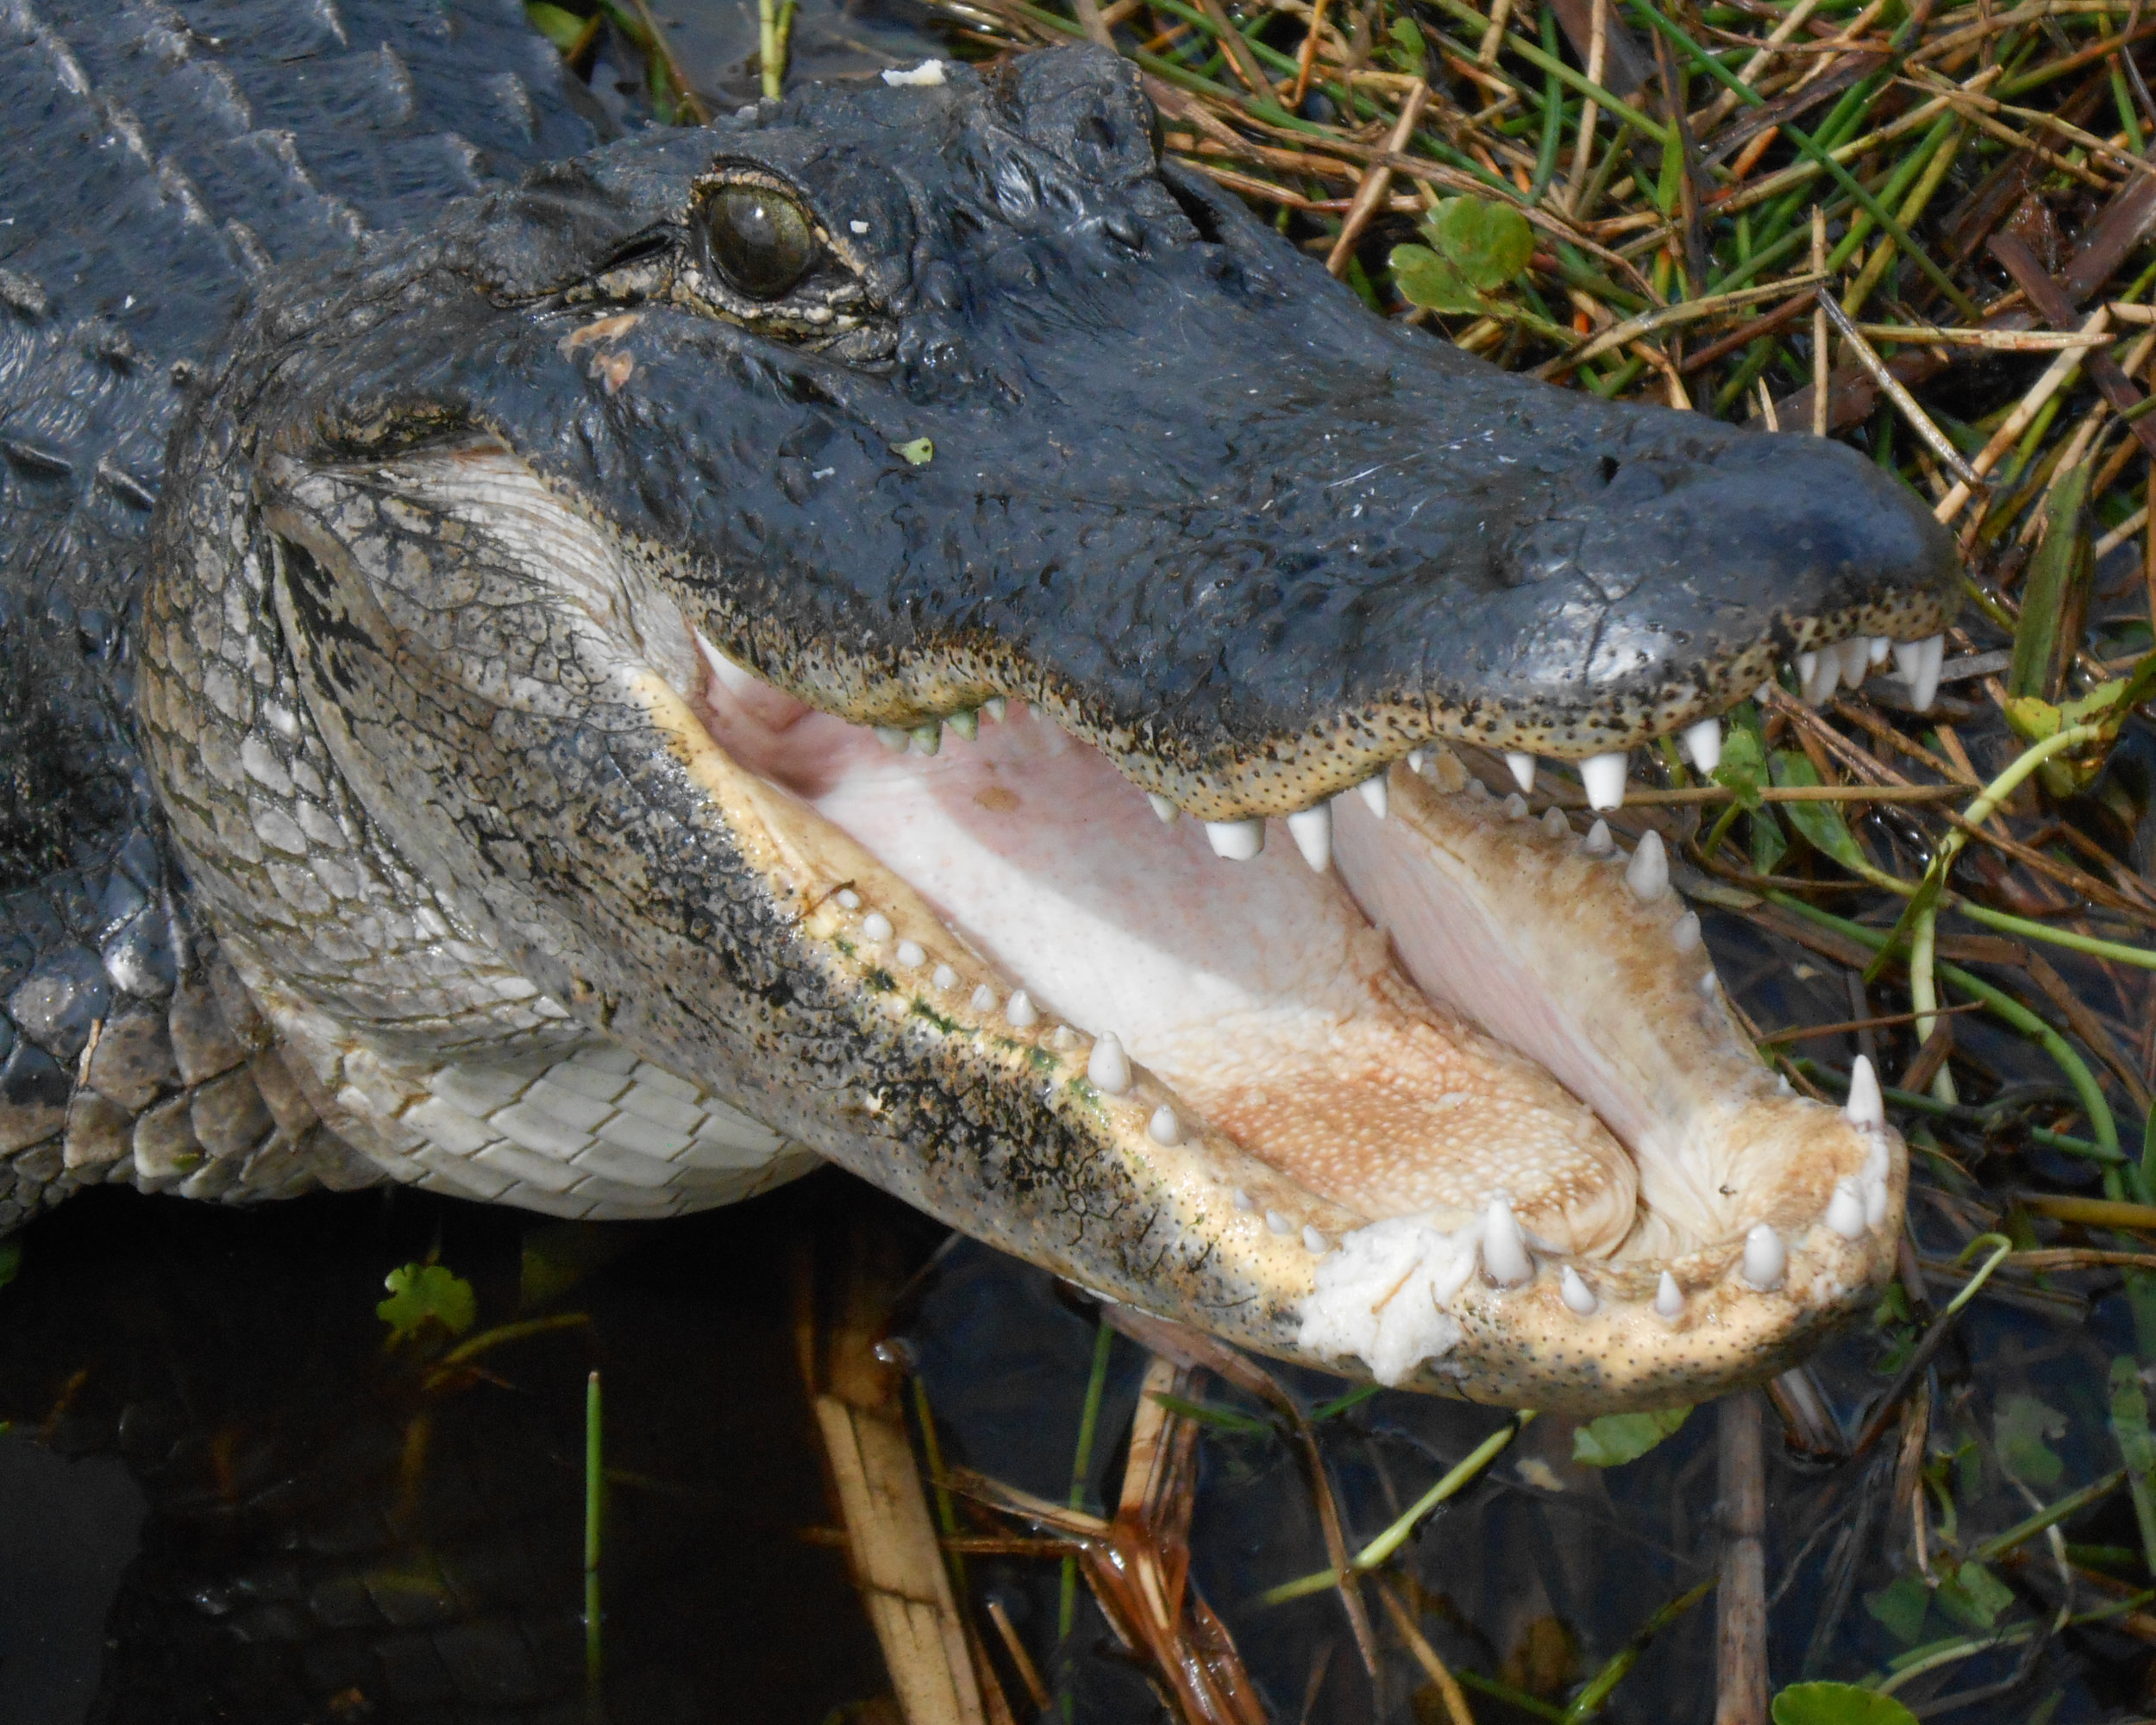 American alligator. Image by Djngsf